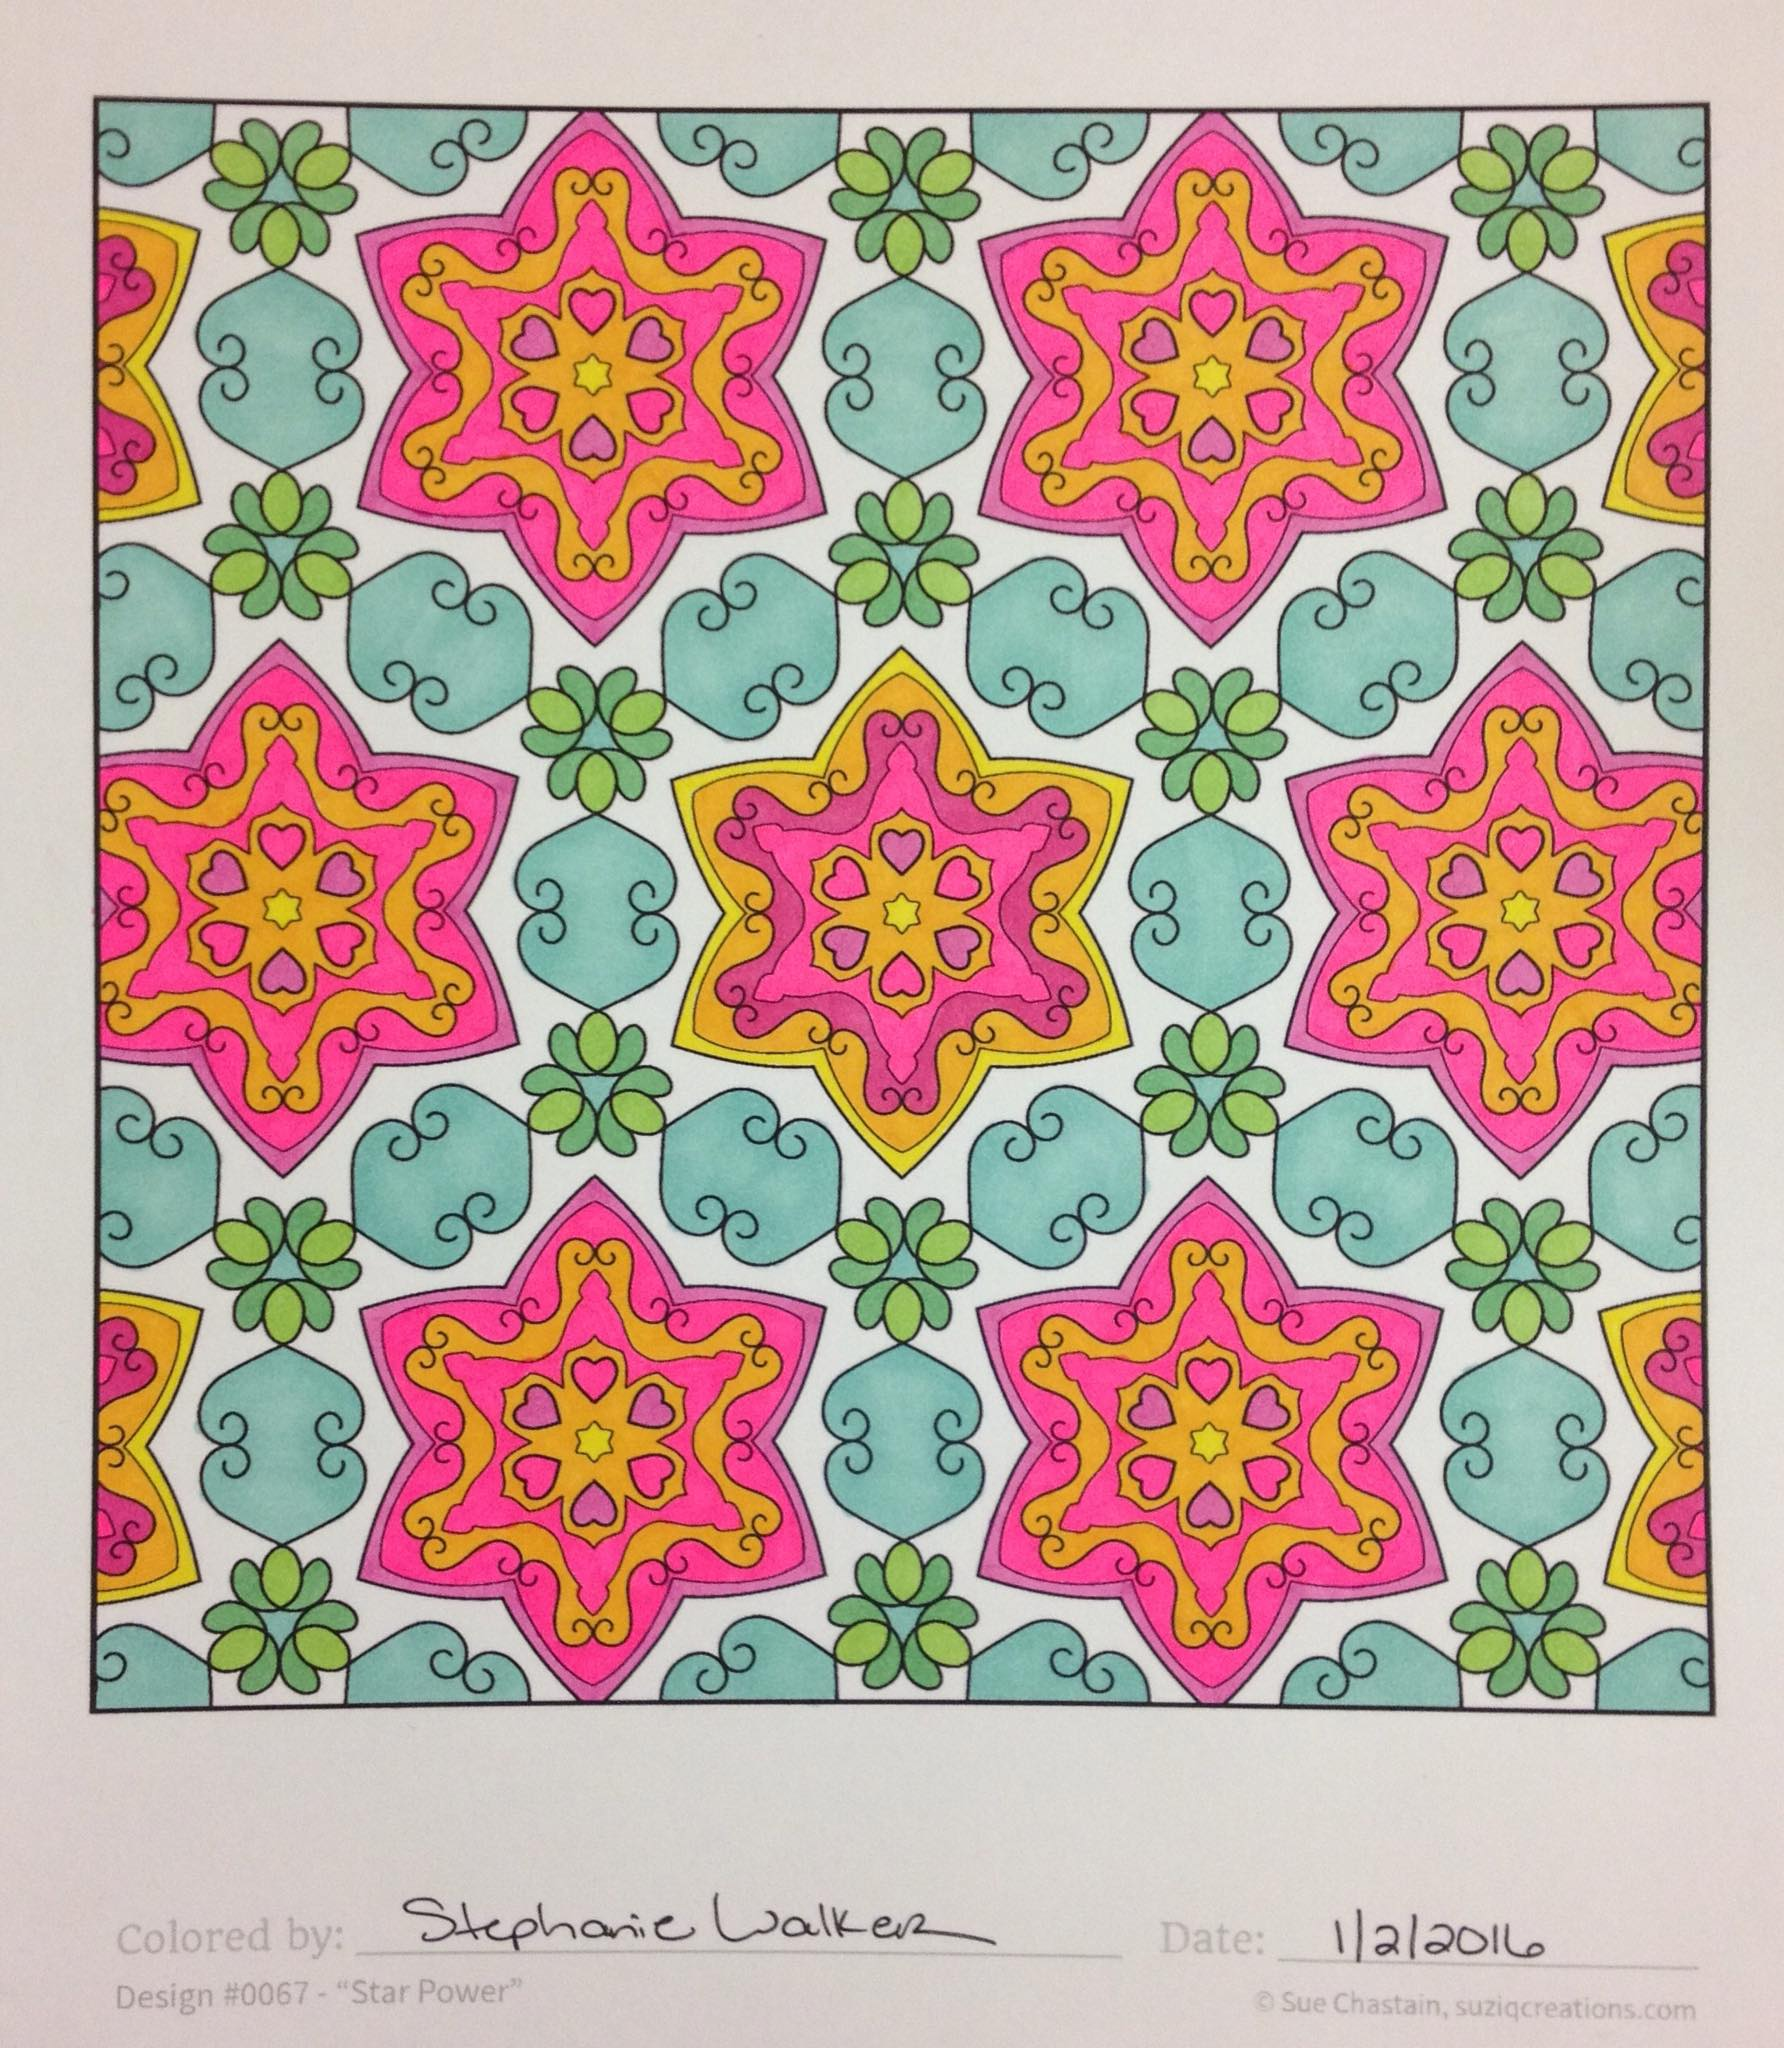 Book color scheme - From The Book Ornamentals Splendid Symmetry